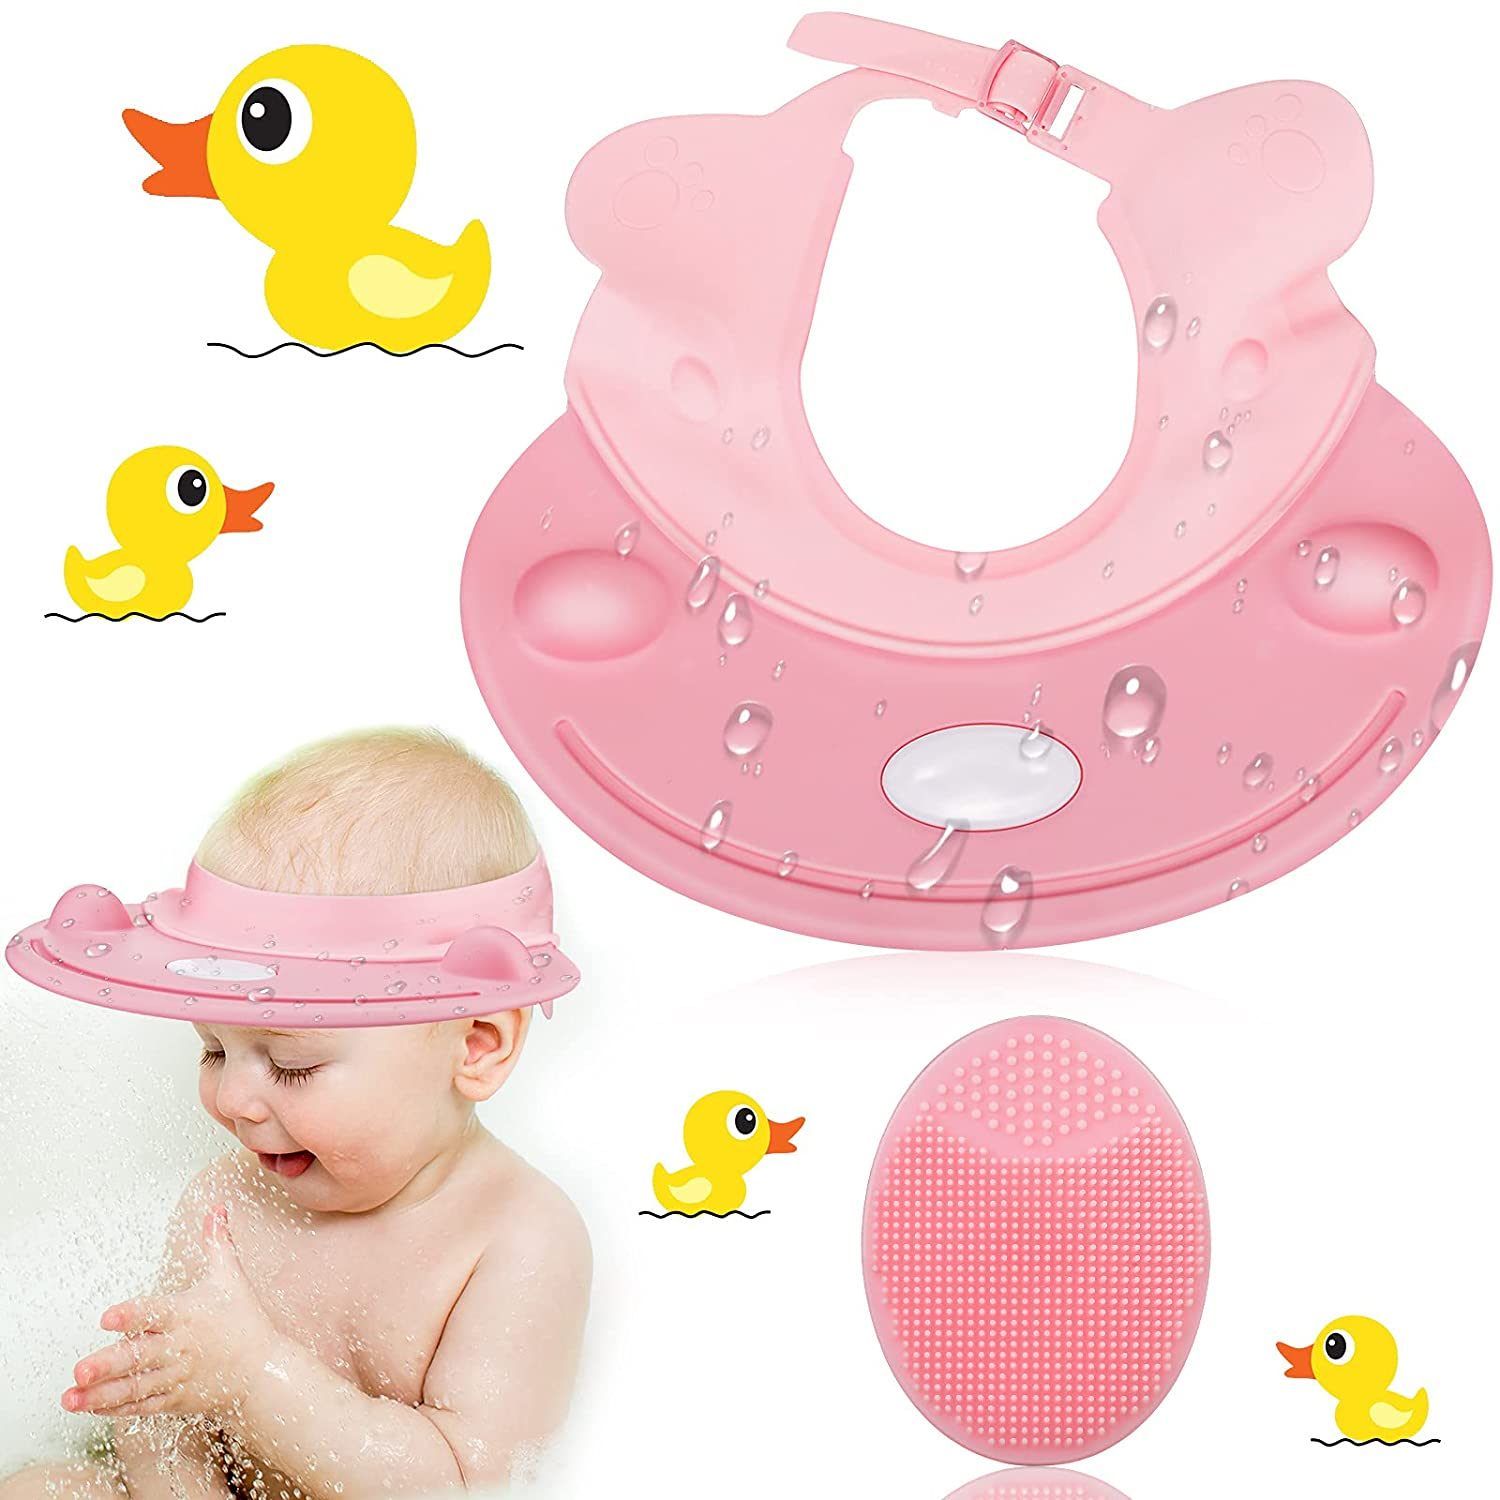 Baby Shower Cap Bath Cap Hat Visor for Kids Toddler Washing Hair Adjustable Waterproof Silicone with Ear Protection Soft (Pink)